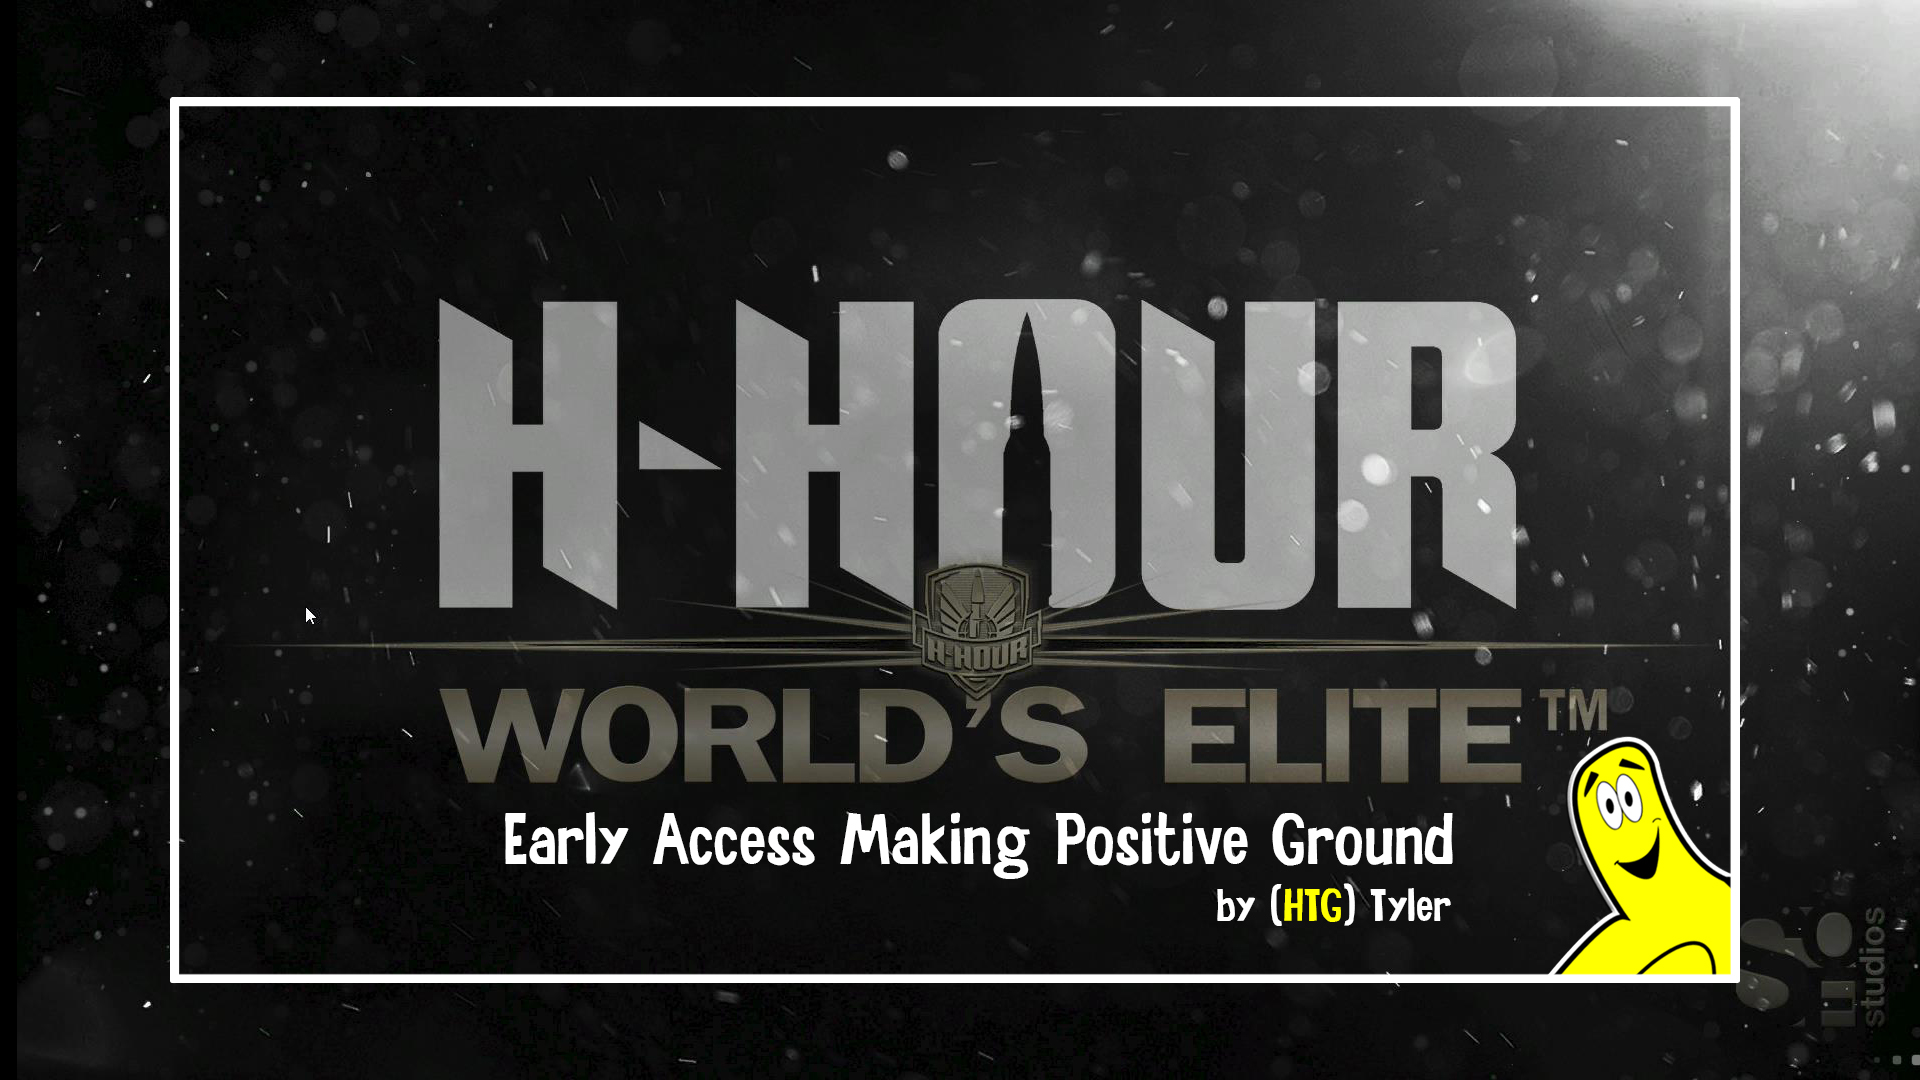 H-Hour Early Access making positive ground! – HTG